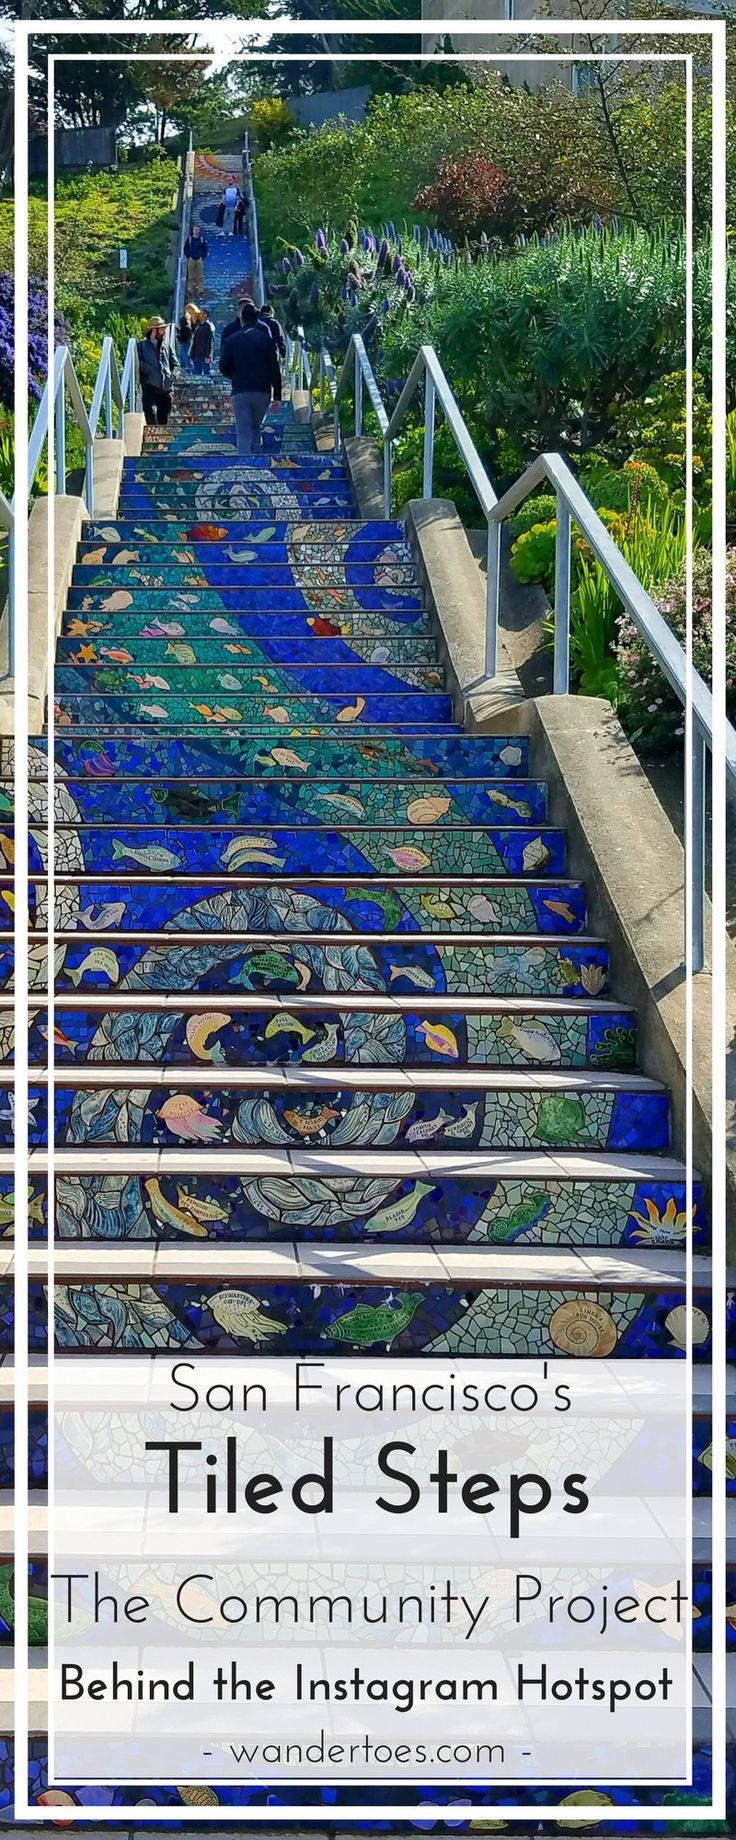 San Francisco, USA: The famous 16th Avenue Tile Stairs are more than an instagrammer's dream, these stairs are the culmination of a neighborhood's vision and desire to combine community building and beautification. San Francisco Tile Stairs | Stair Murals | Stair Mural | Moraga Street Tile Stairs | 16th Avenue Tile Steps |